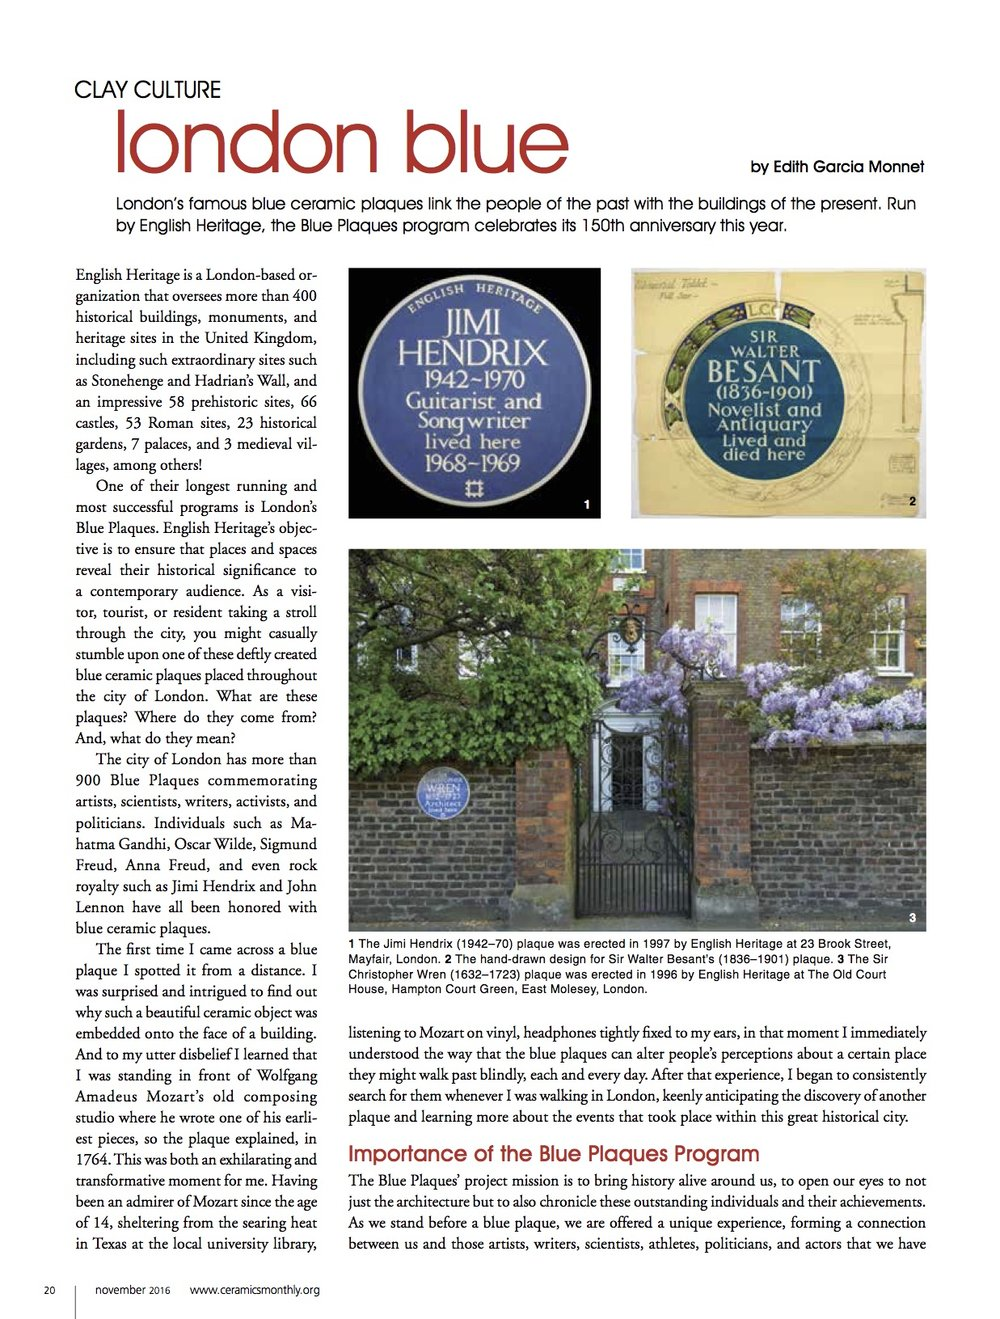 Ceramics Monthly - Author of Clay Culture: london blueLondon's famous blue ceramic plaques link the people of the past with the buildings of the present. Run by English Heritage, the Blue Plaques program celebrates its 150th anniversary this year.English Heritage is a London-based organization that oversees more than 400 historical buildings, monuments, and heritage sites in the United Kingdom, including such extraordinary sites such as Stonehenge and Hadrian's Wall, and an impressive 58 prehistoric sites, 66 castles, 53 Roman sites, 23 historical gardens, 7 palaces, and 3 medieval villages, among others!One of their longest running and most successful programs is London's Blue Plaques. English Heritage's objective is to ensure that places and spaces reveal their historical significance to a contemporary audience.As a visitor, tourist, or resident taking a stroll through the city, you might casually stumble upon one of these deftly created blue ceramic plaques placed throughout the city of London. What are these plaques? Where do they come from? And, what do they mean?